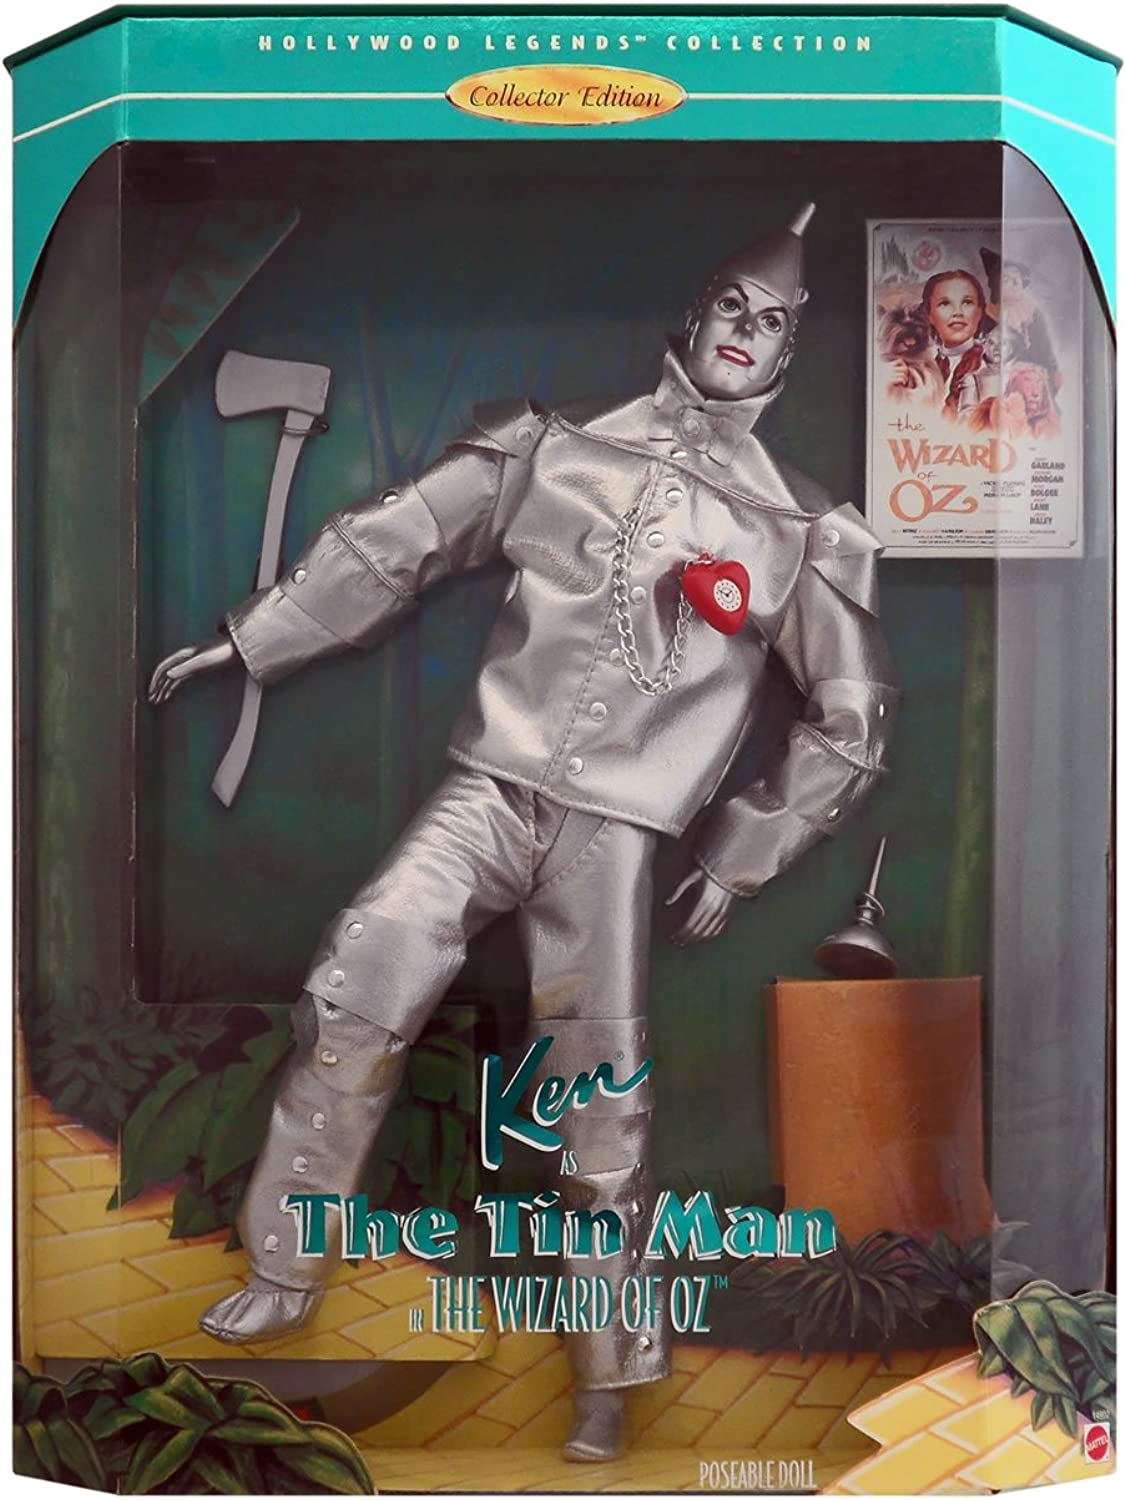 Barbie Ken As The Tin Man, Hollywood Legends, The Wizard Of Oz Collectors Edition